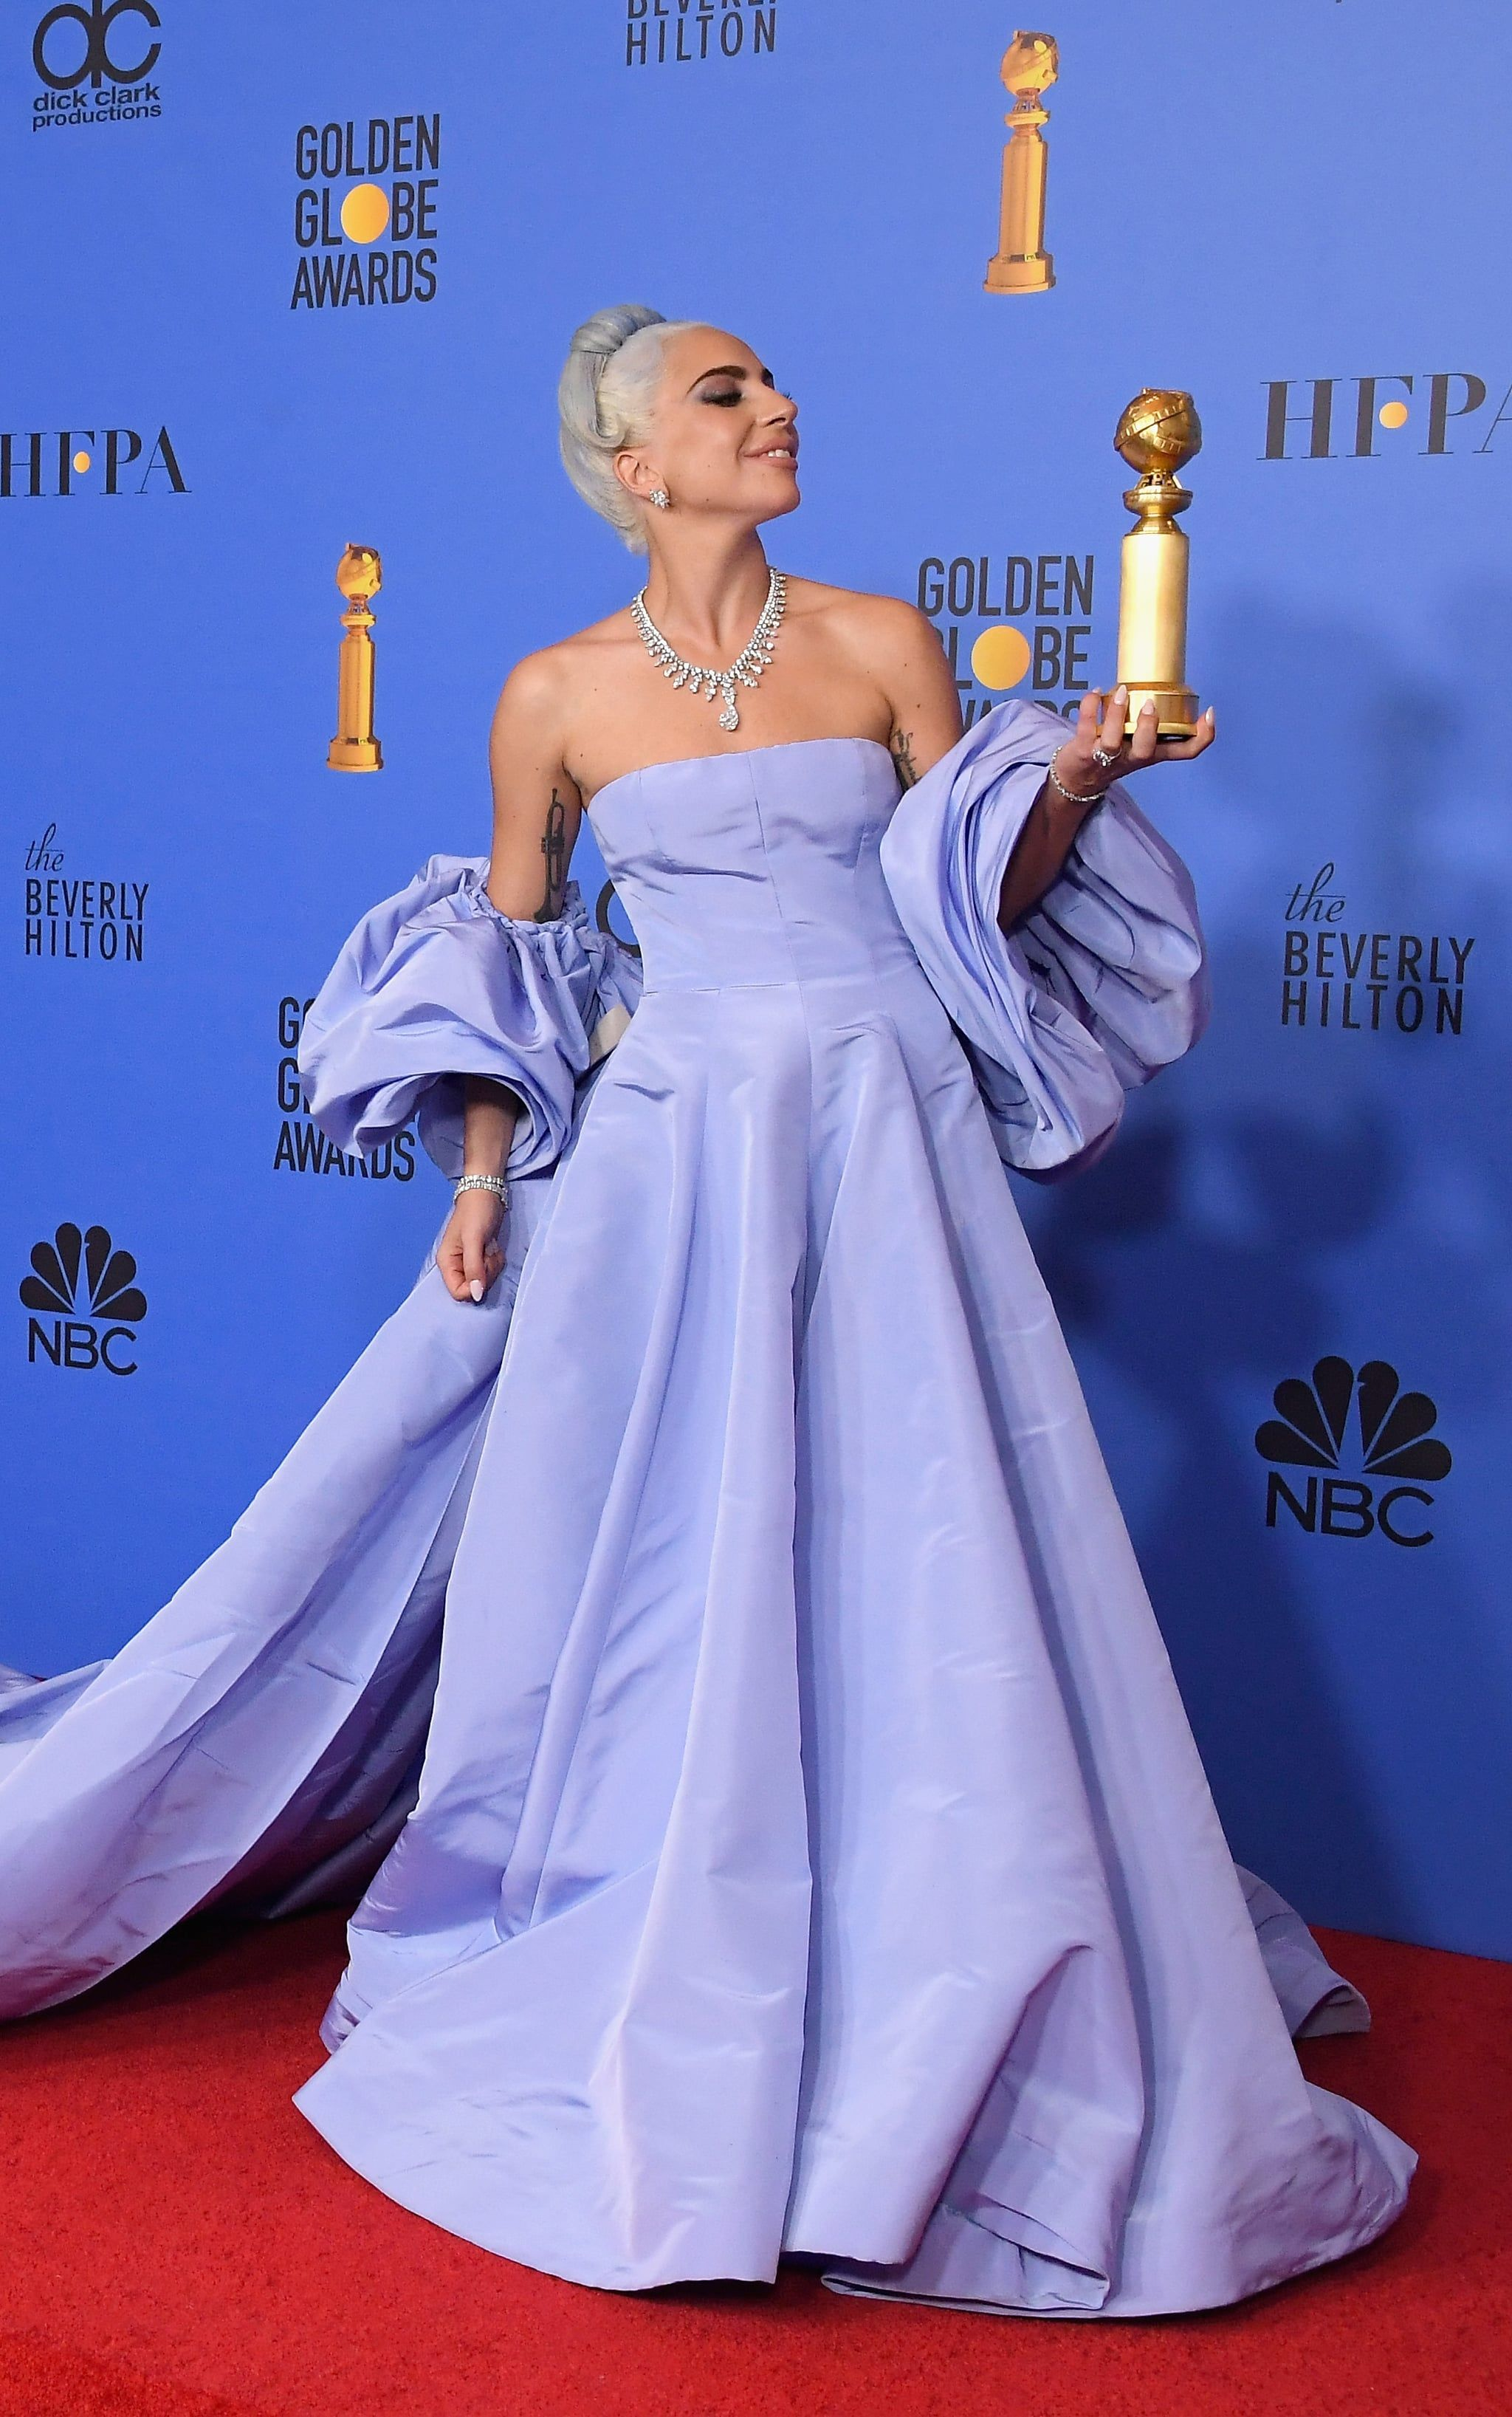 e6c203dbeb5d Lady Gaga Brought the Drama to the Globes in This Breathtaking  Cinderella-Inspired Gown